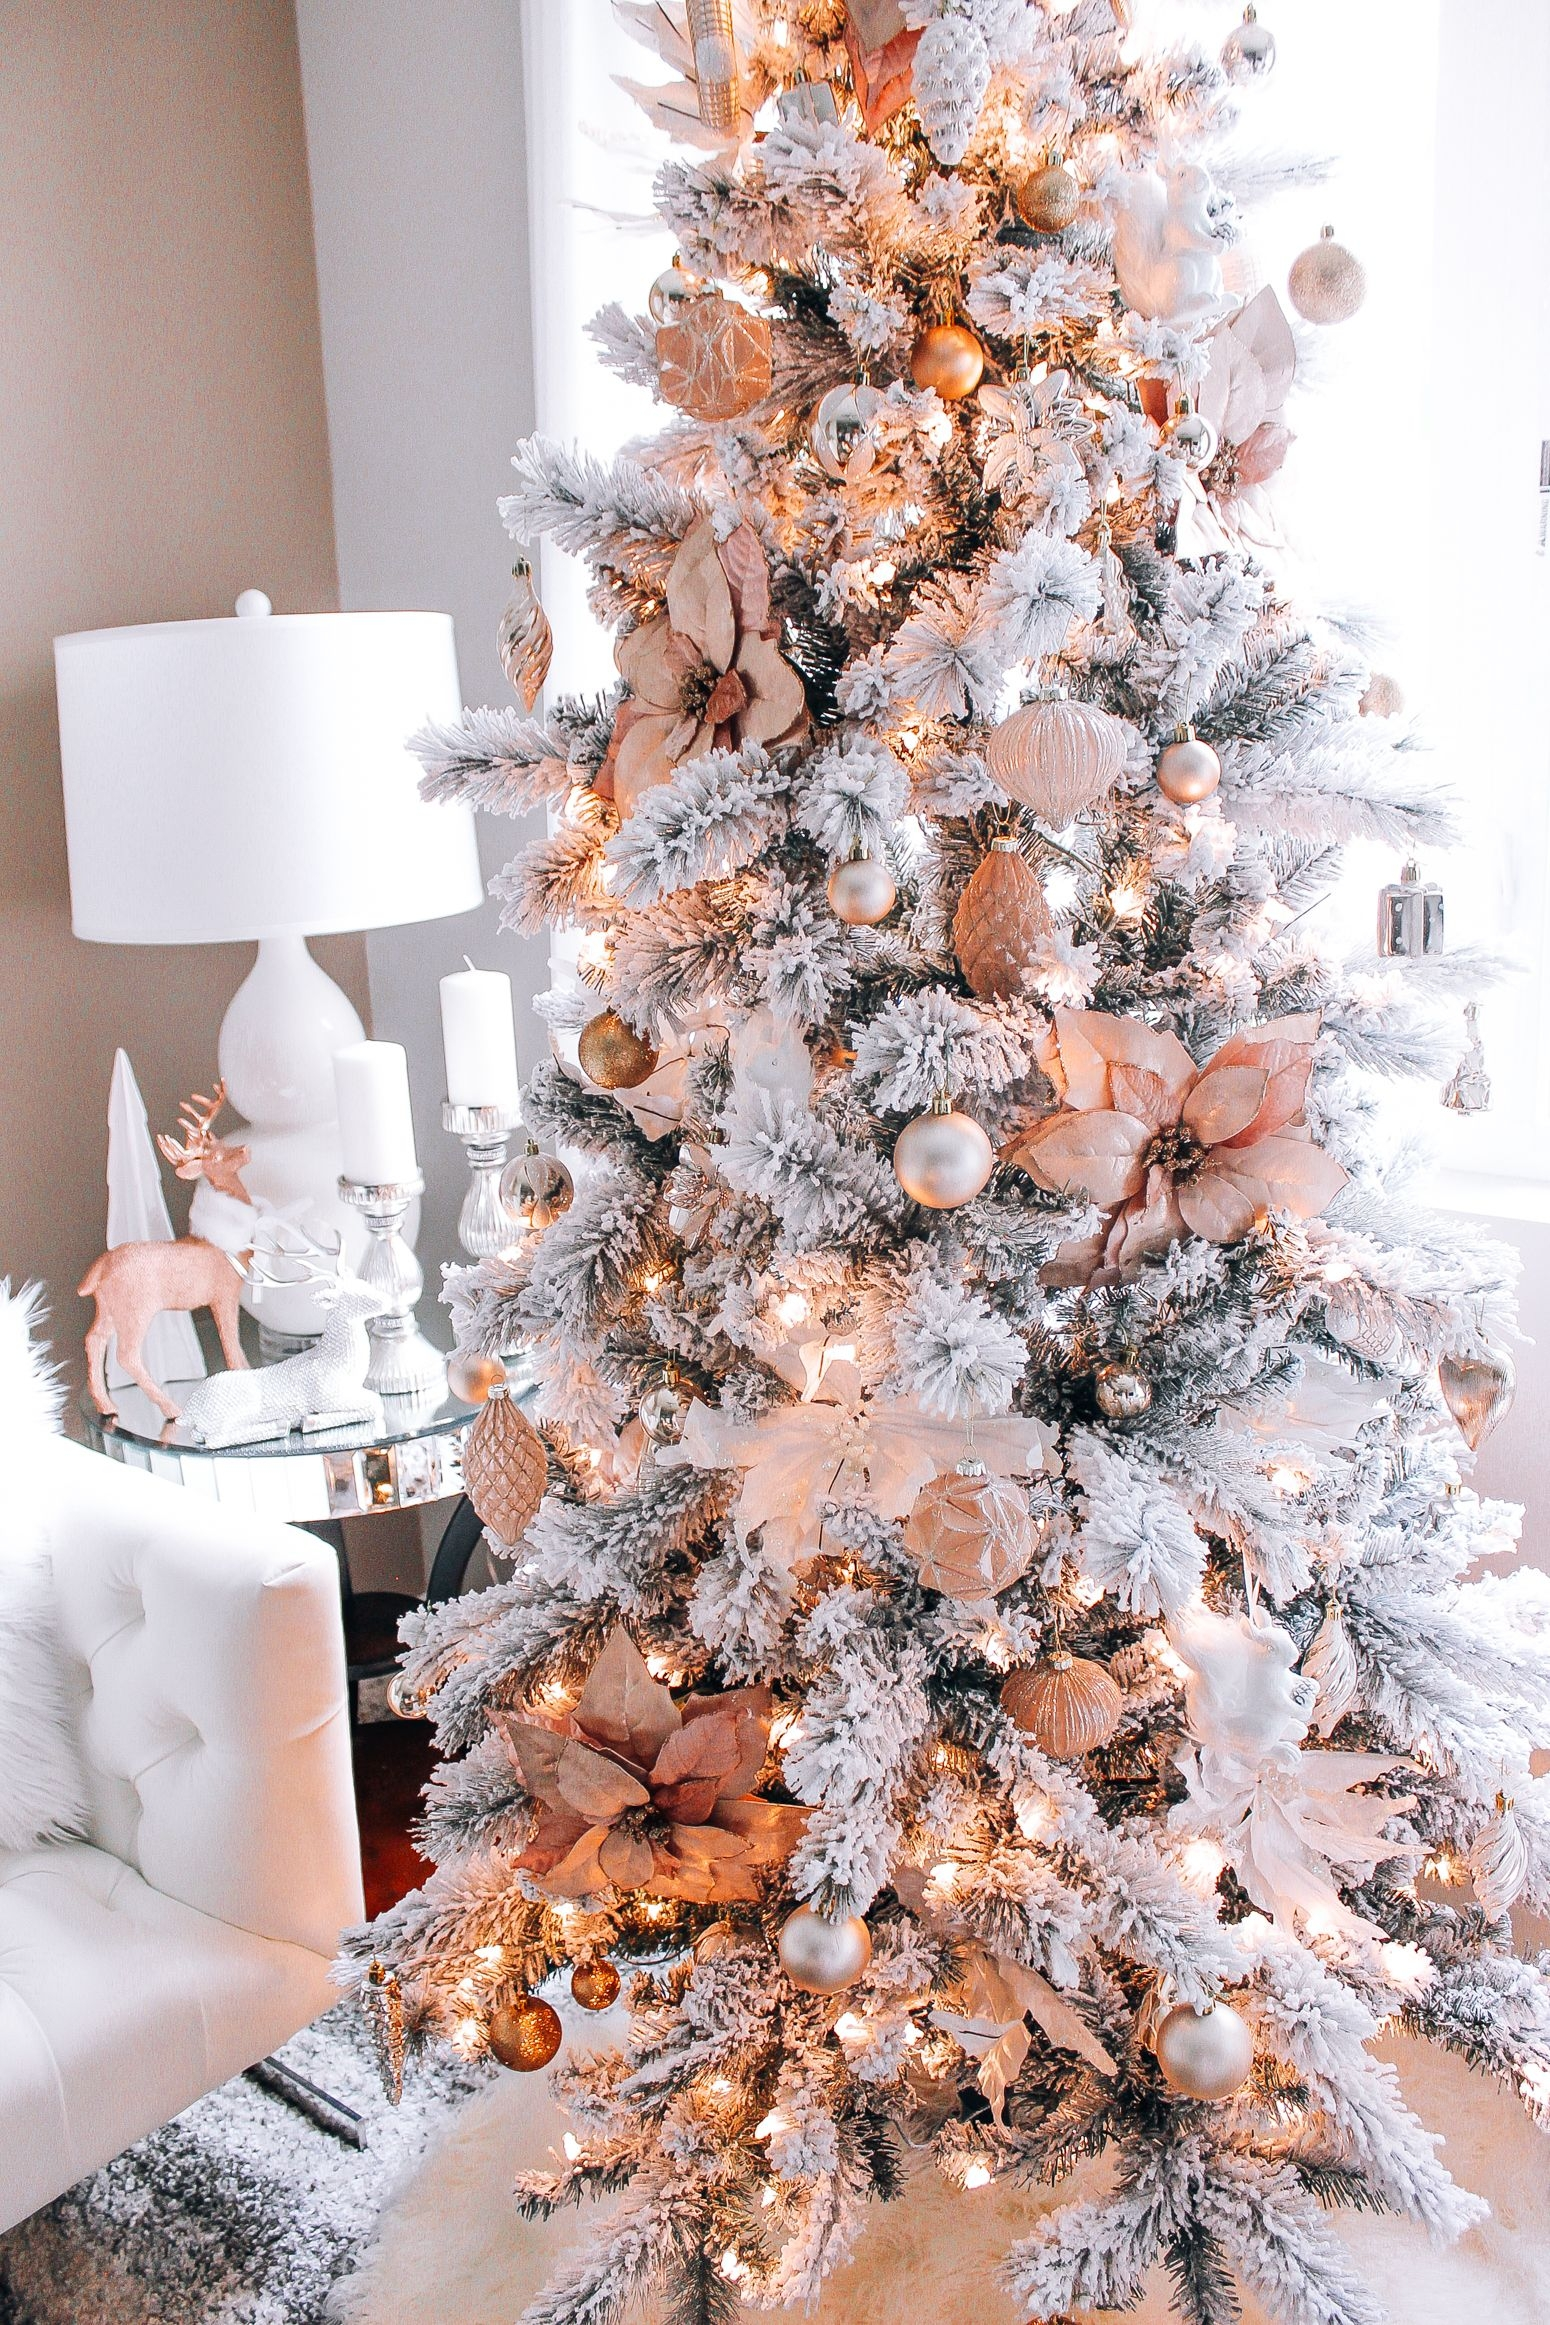 Rose Gold Christmas Ornaments You Ll Love In 2020 Visualhunt